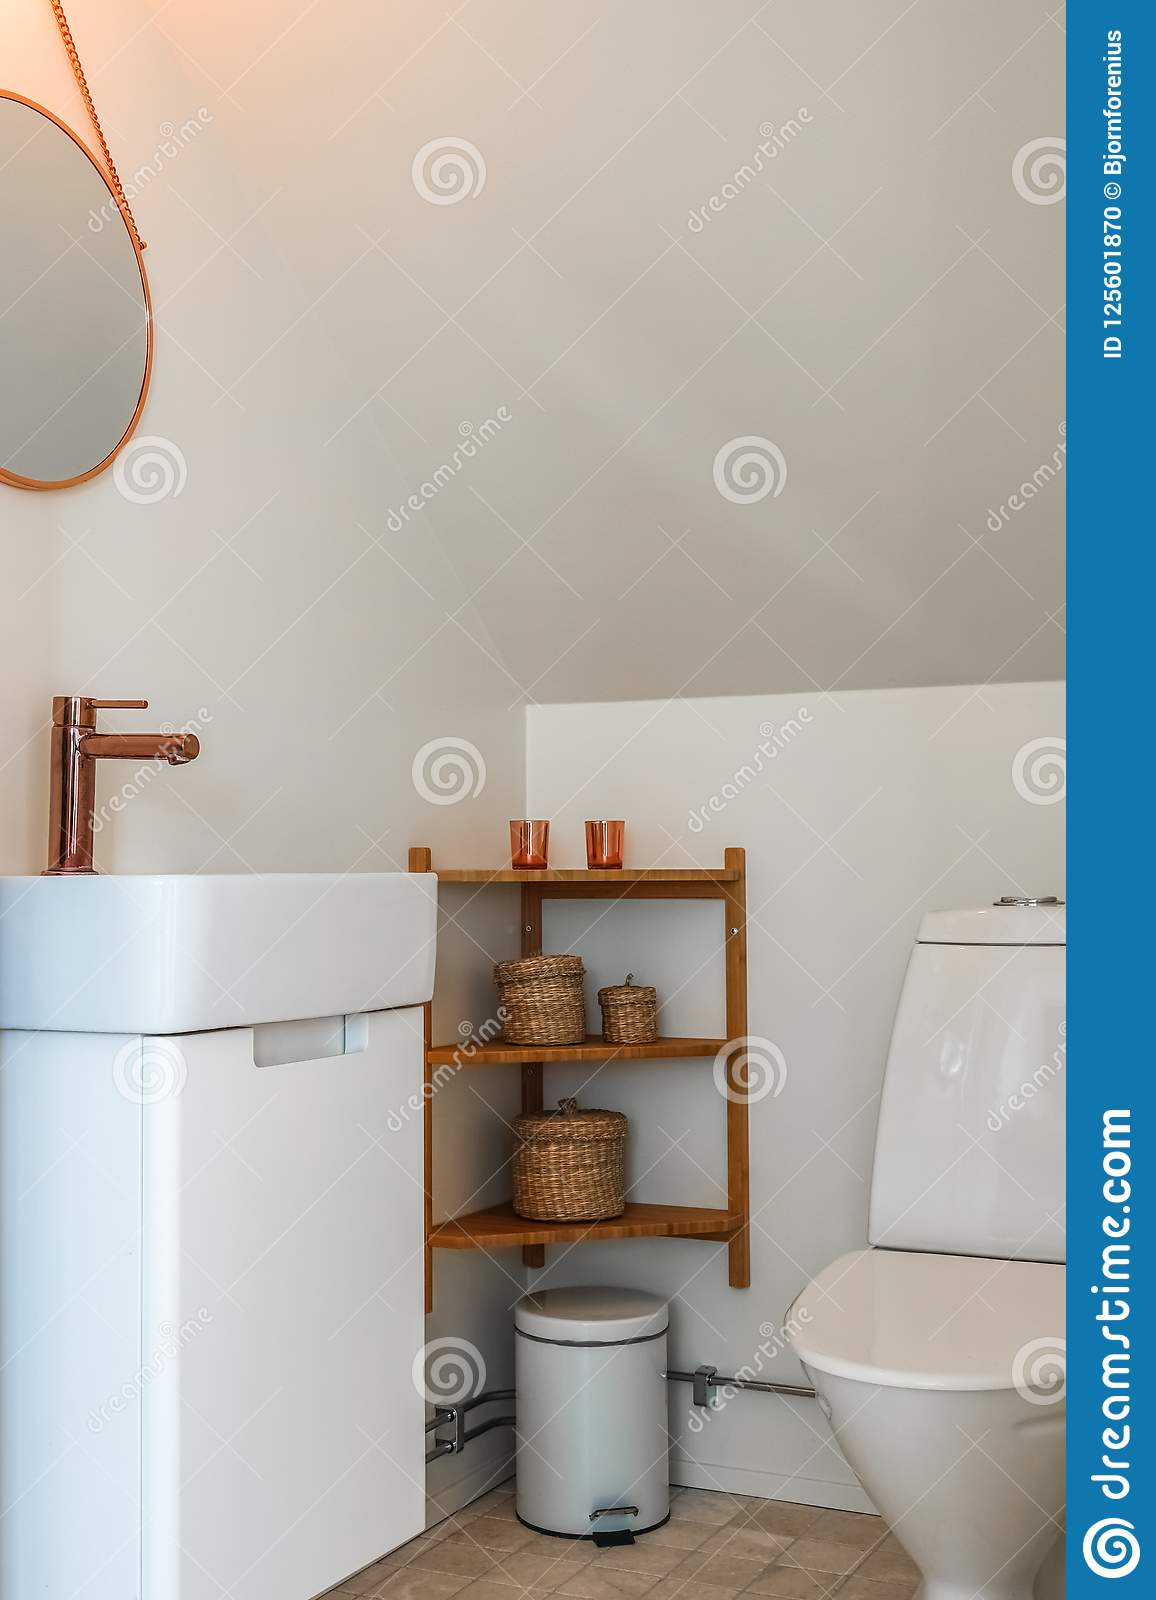 Modern Small Toilet Room With Copper Details Stock Photo